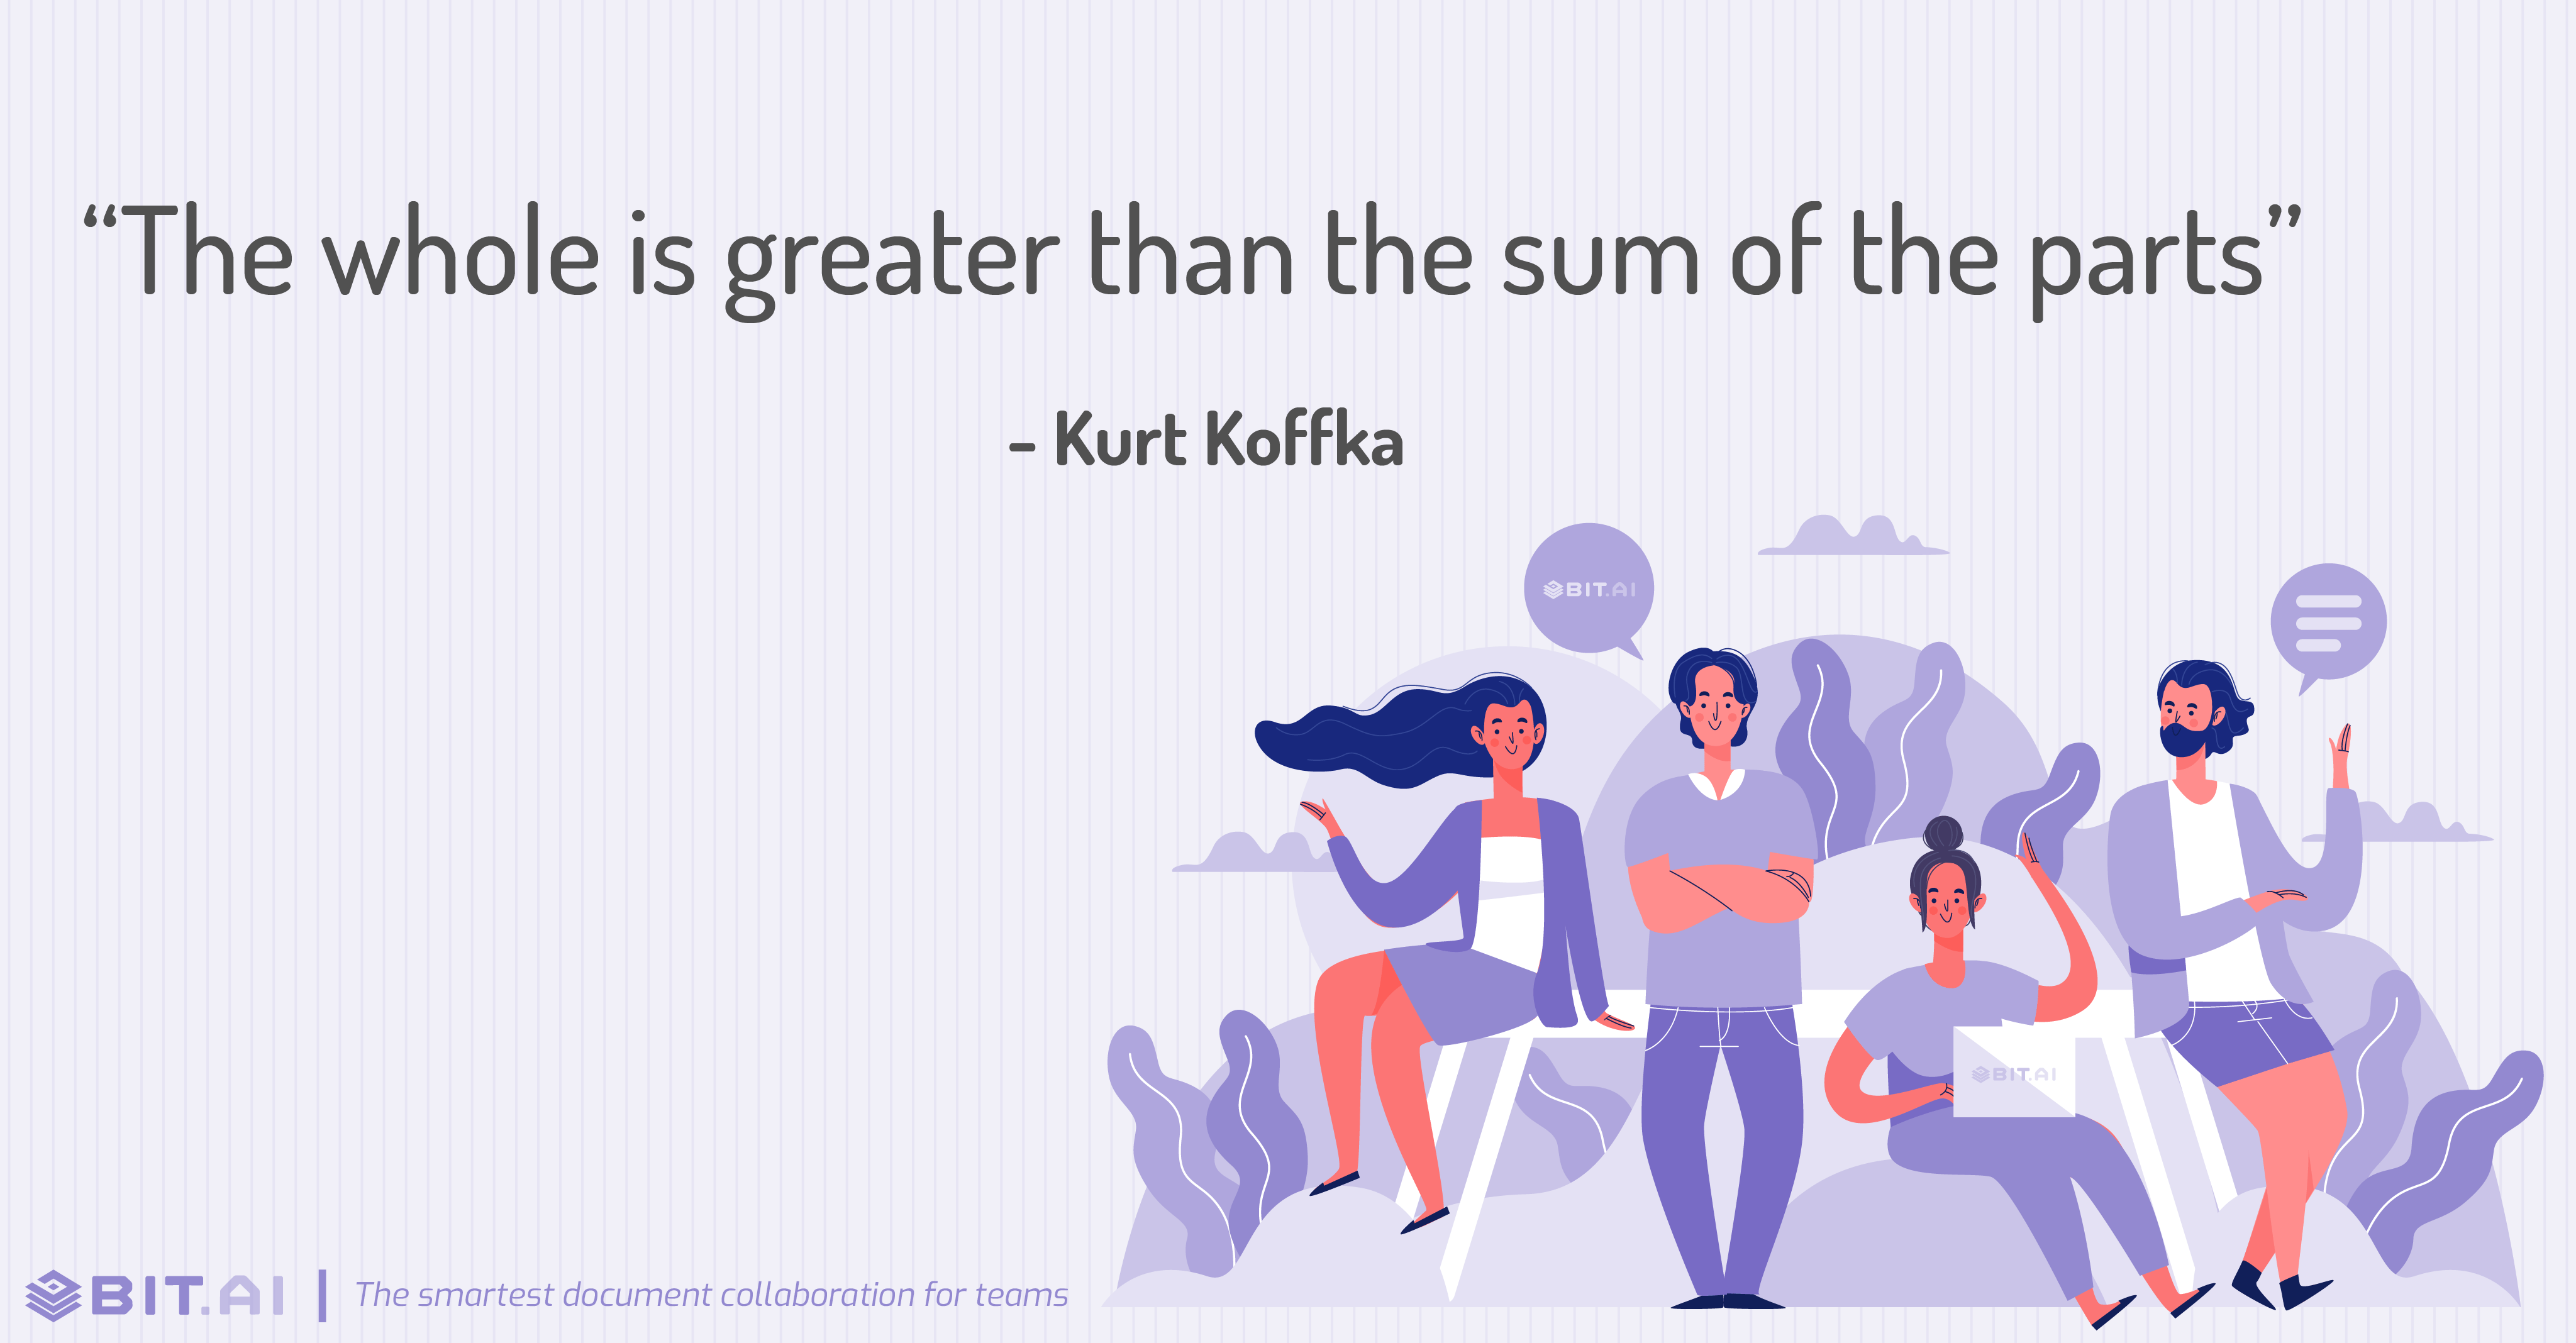 """The whole is greater than the sum of the parts"" - Kurt Koffka"